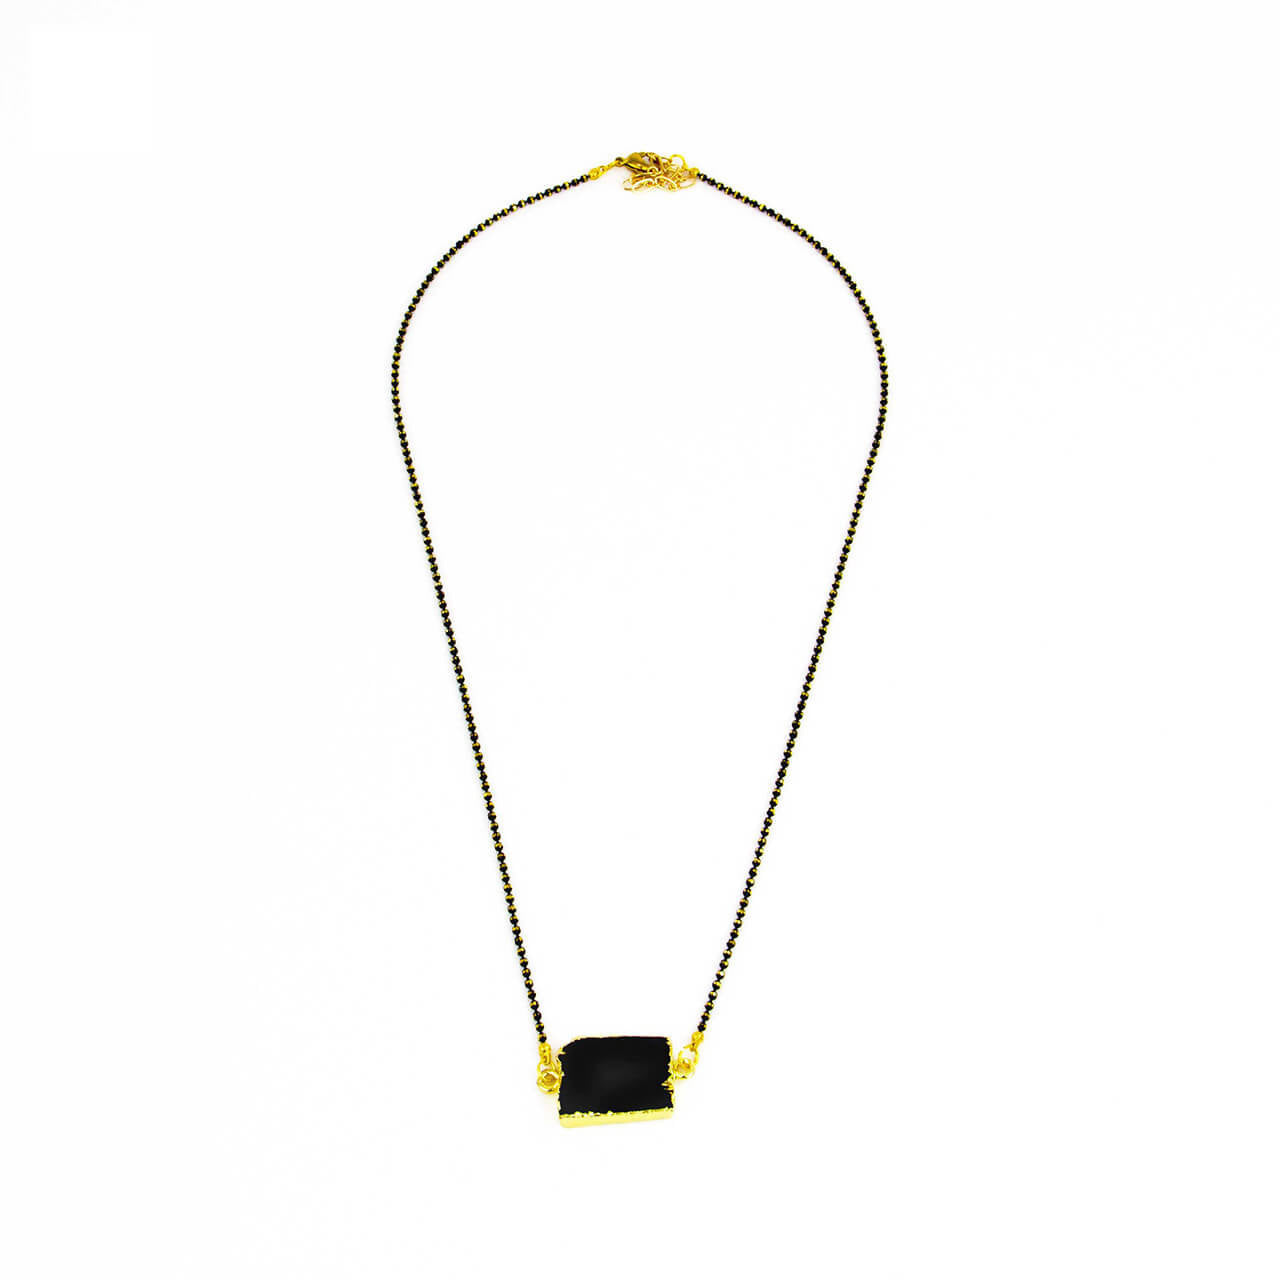 Short Black Tourmaline Necklace